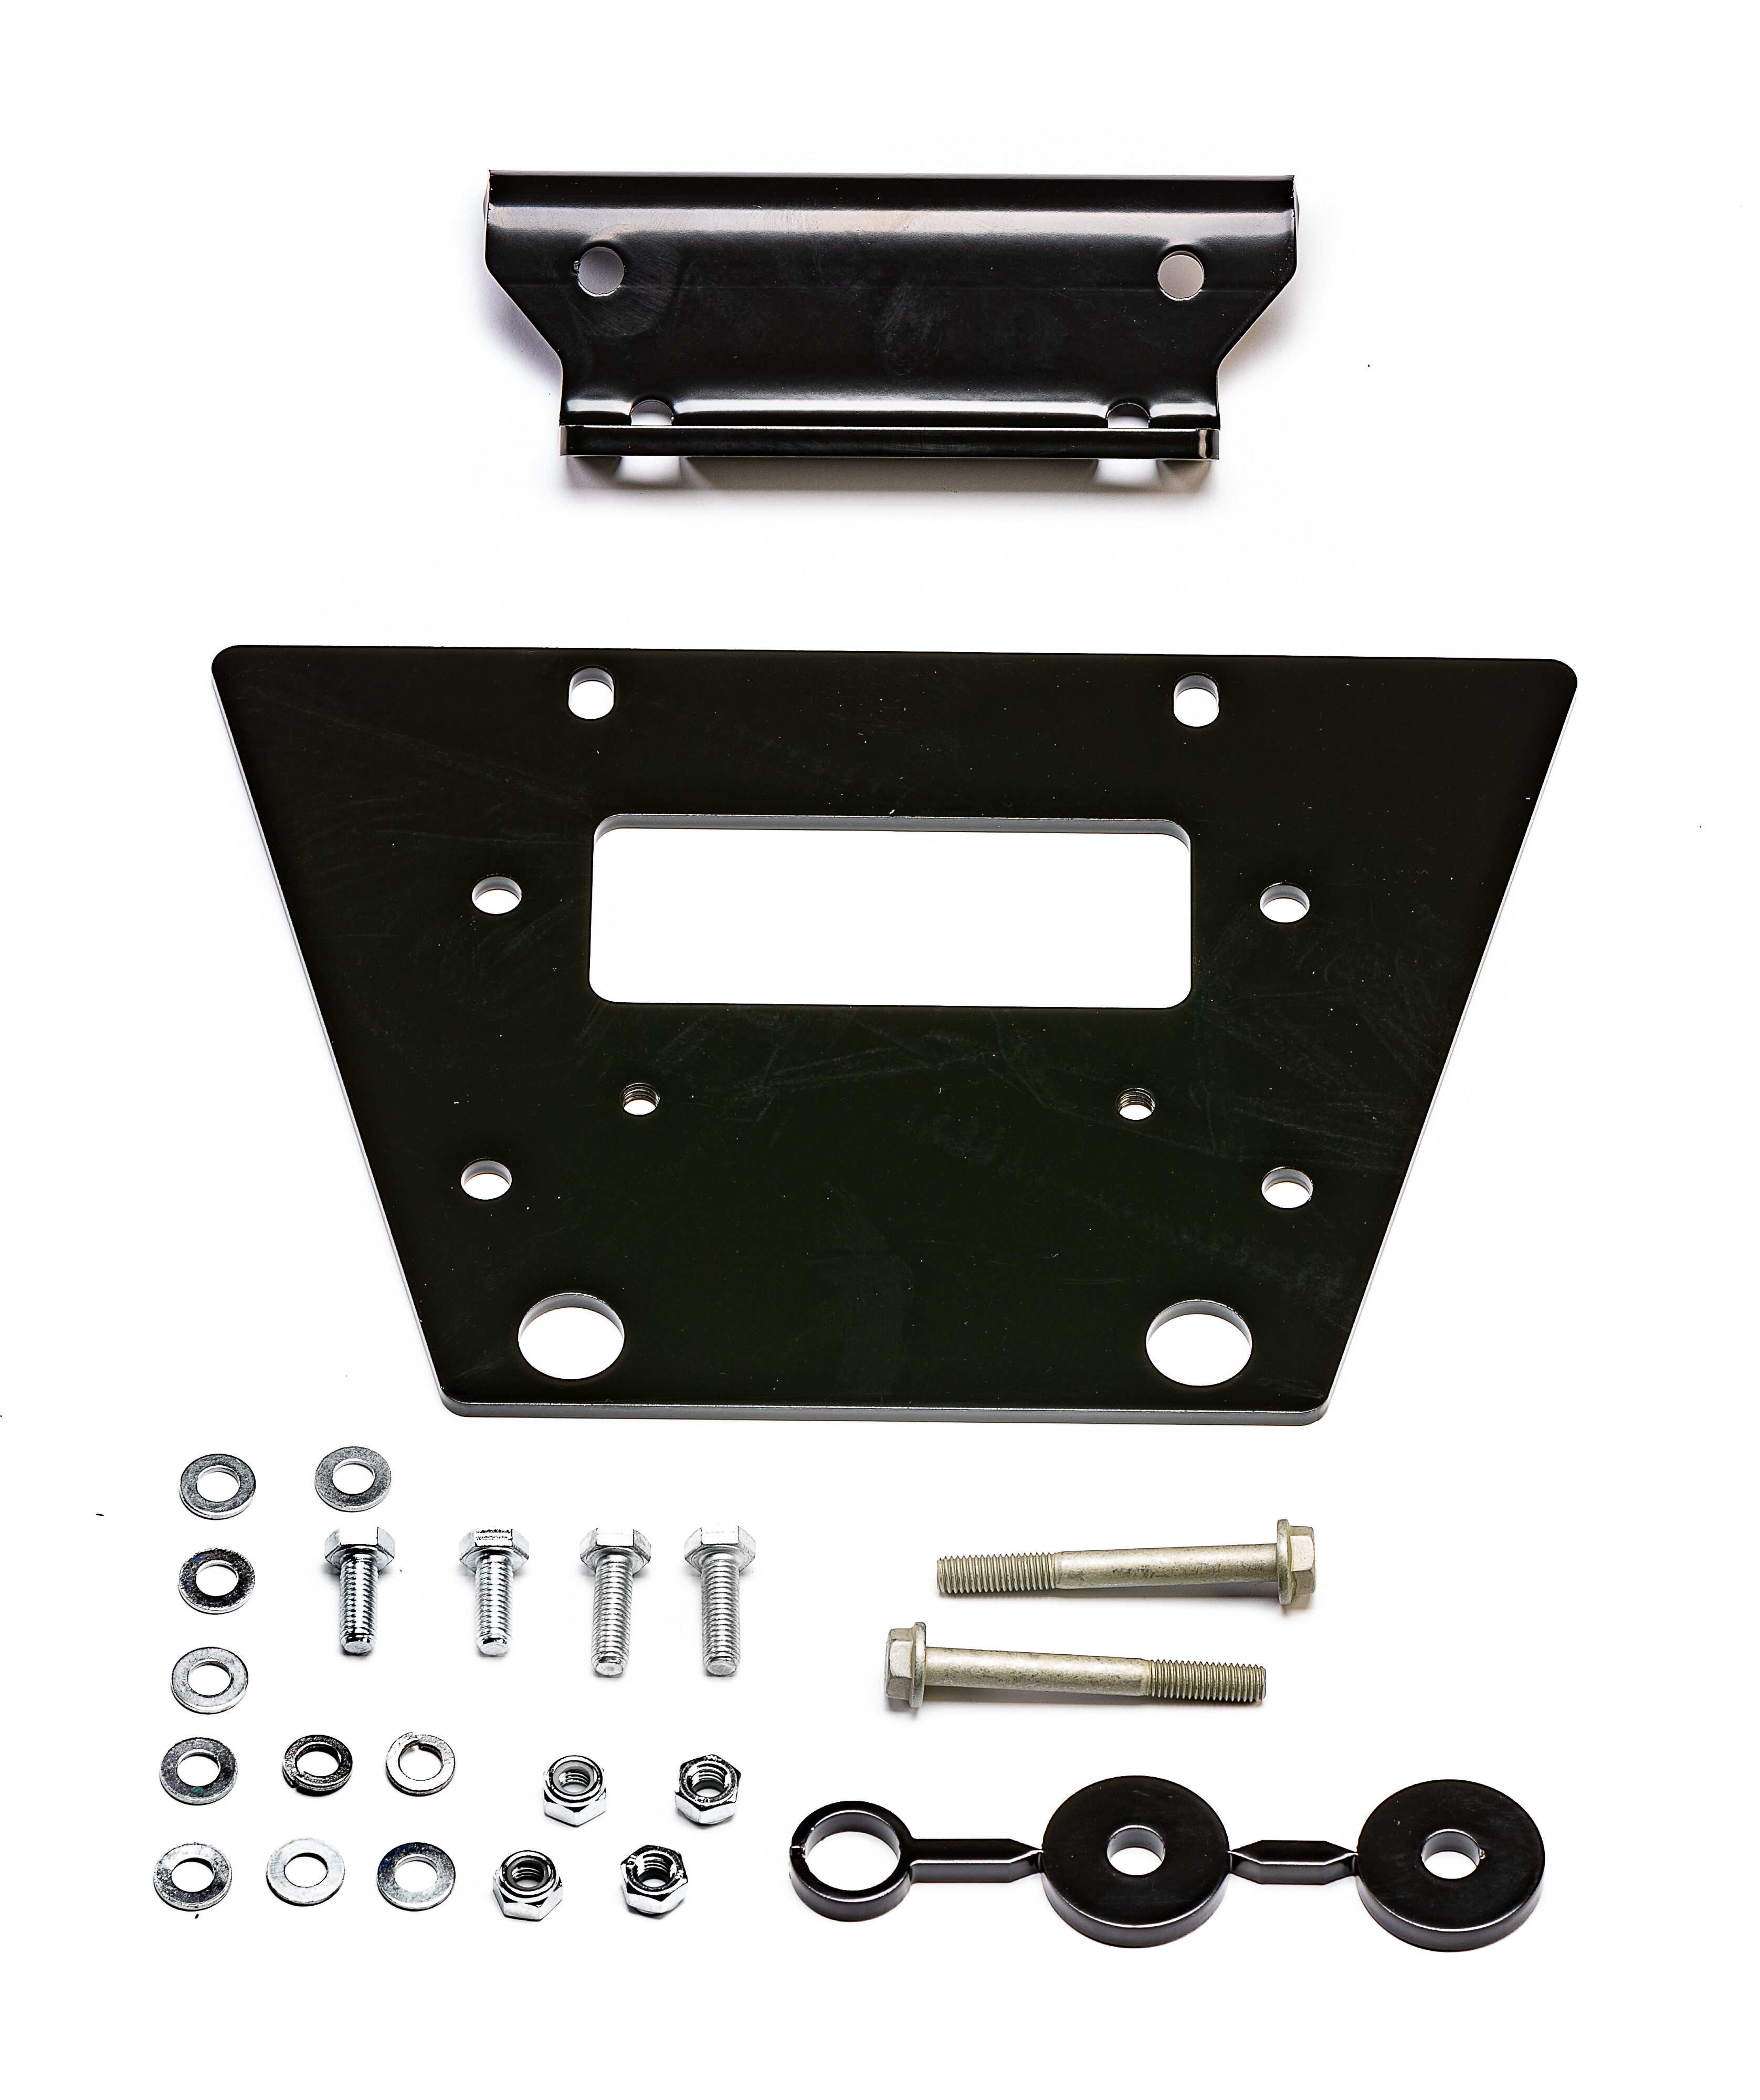 Warn 102102 Winch Mounting Kit